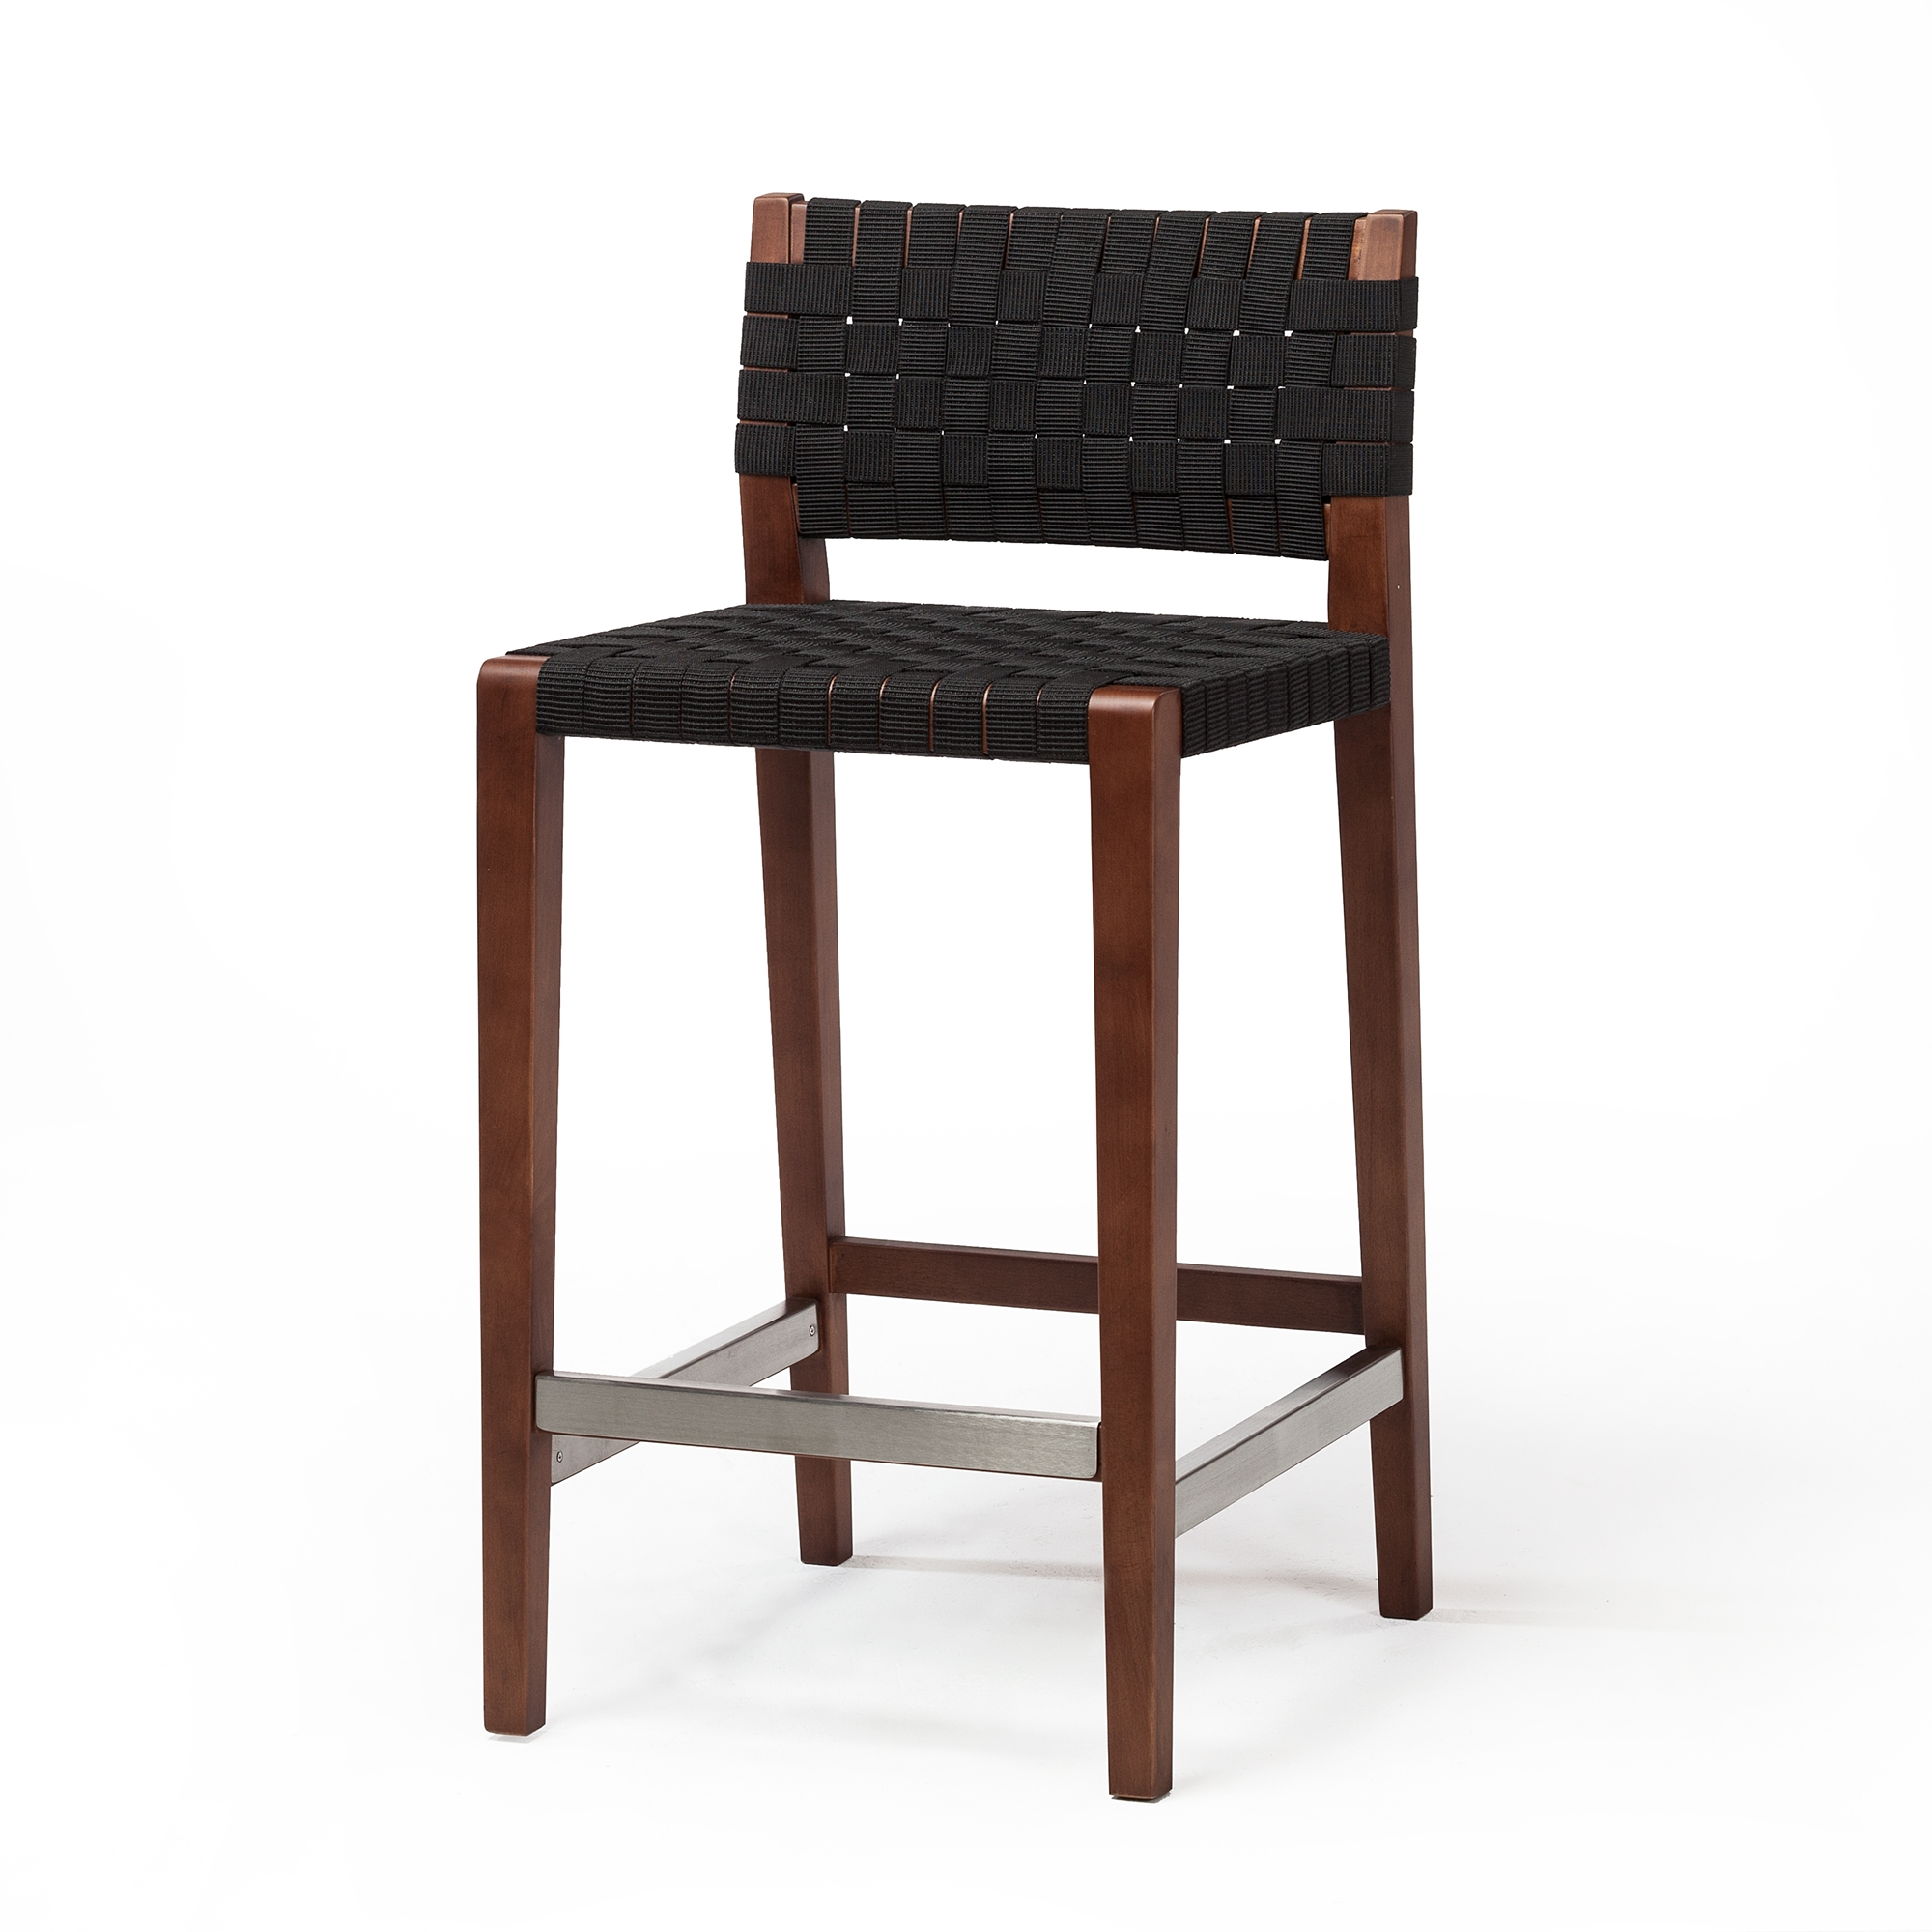 Amazing Risom Style Counter Stool In Black The Khazana Home Austin Furniture Store Pabps2019 Chair Design Images Pabps2019Com